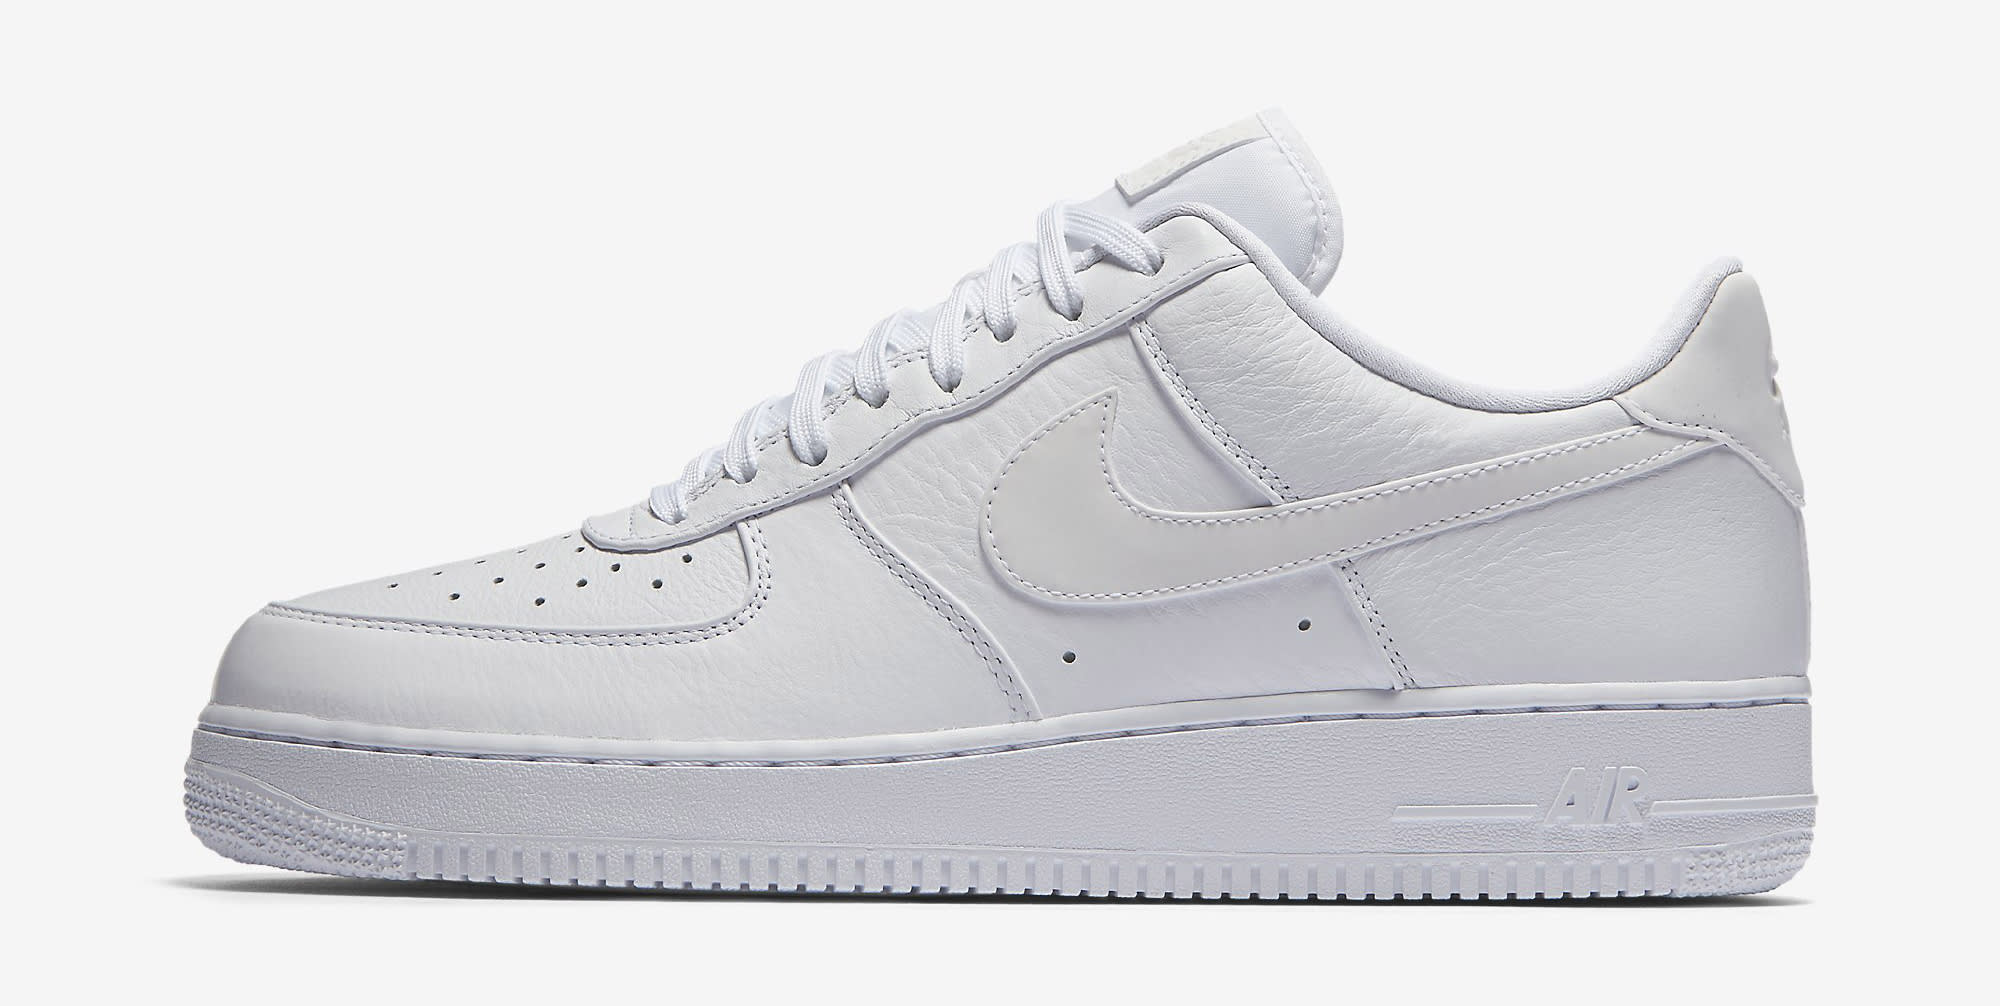 nike air force 1 low white reflective 905345 100 sole. Black Bedroom Furniture Sets. Home Design Ideas